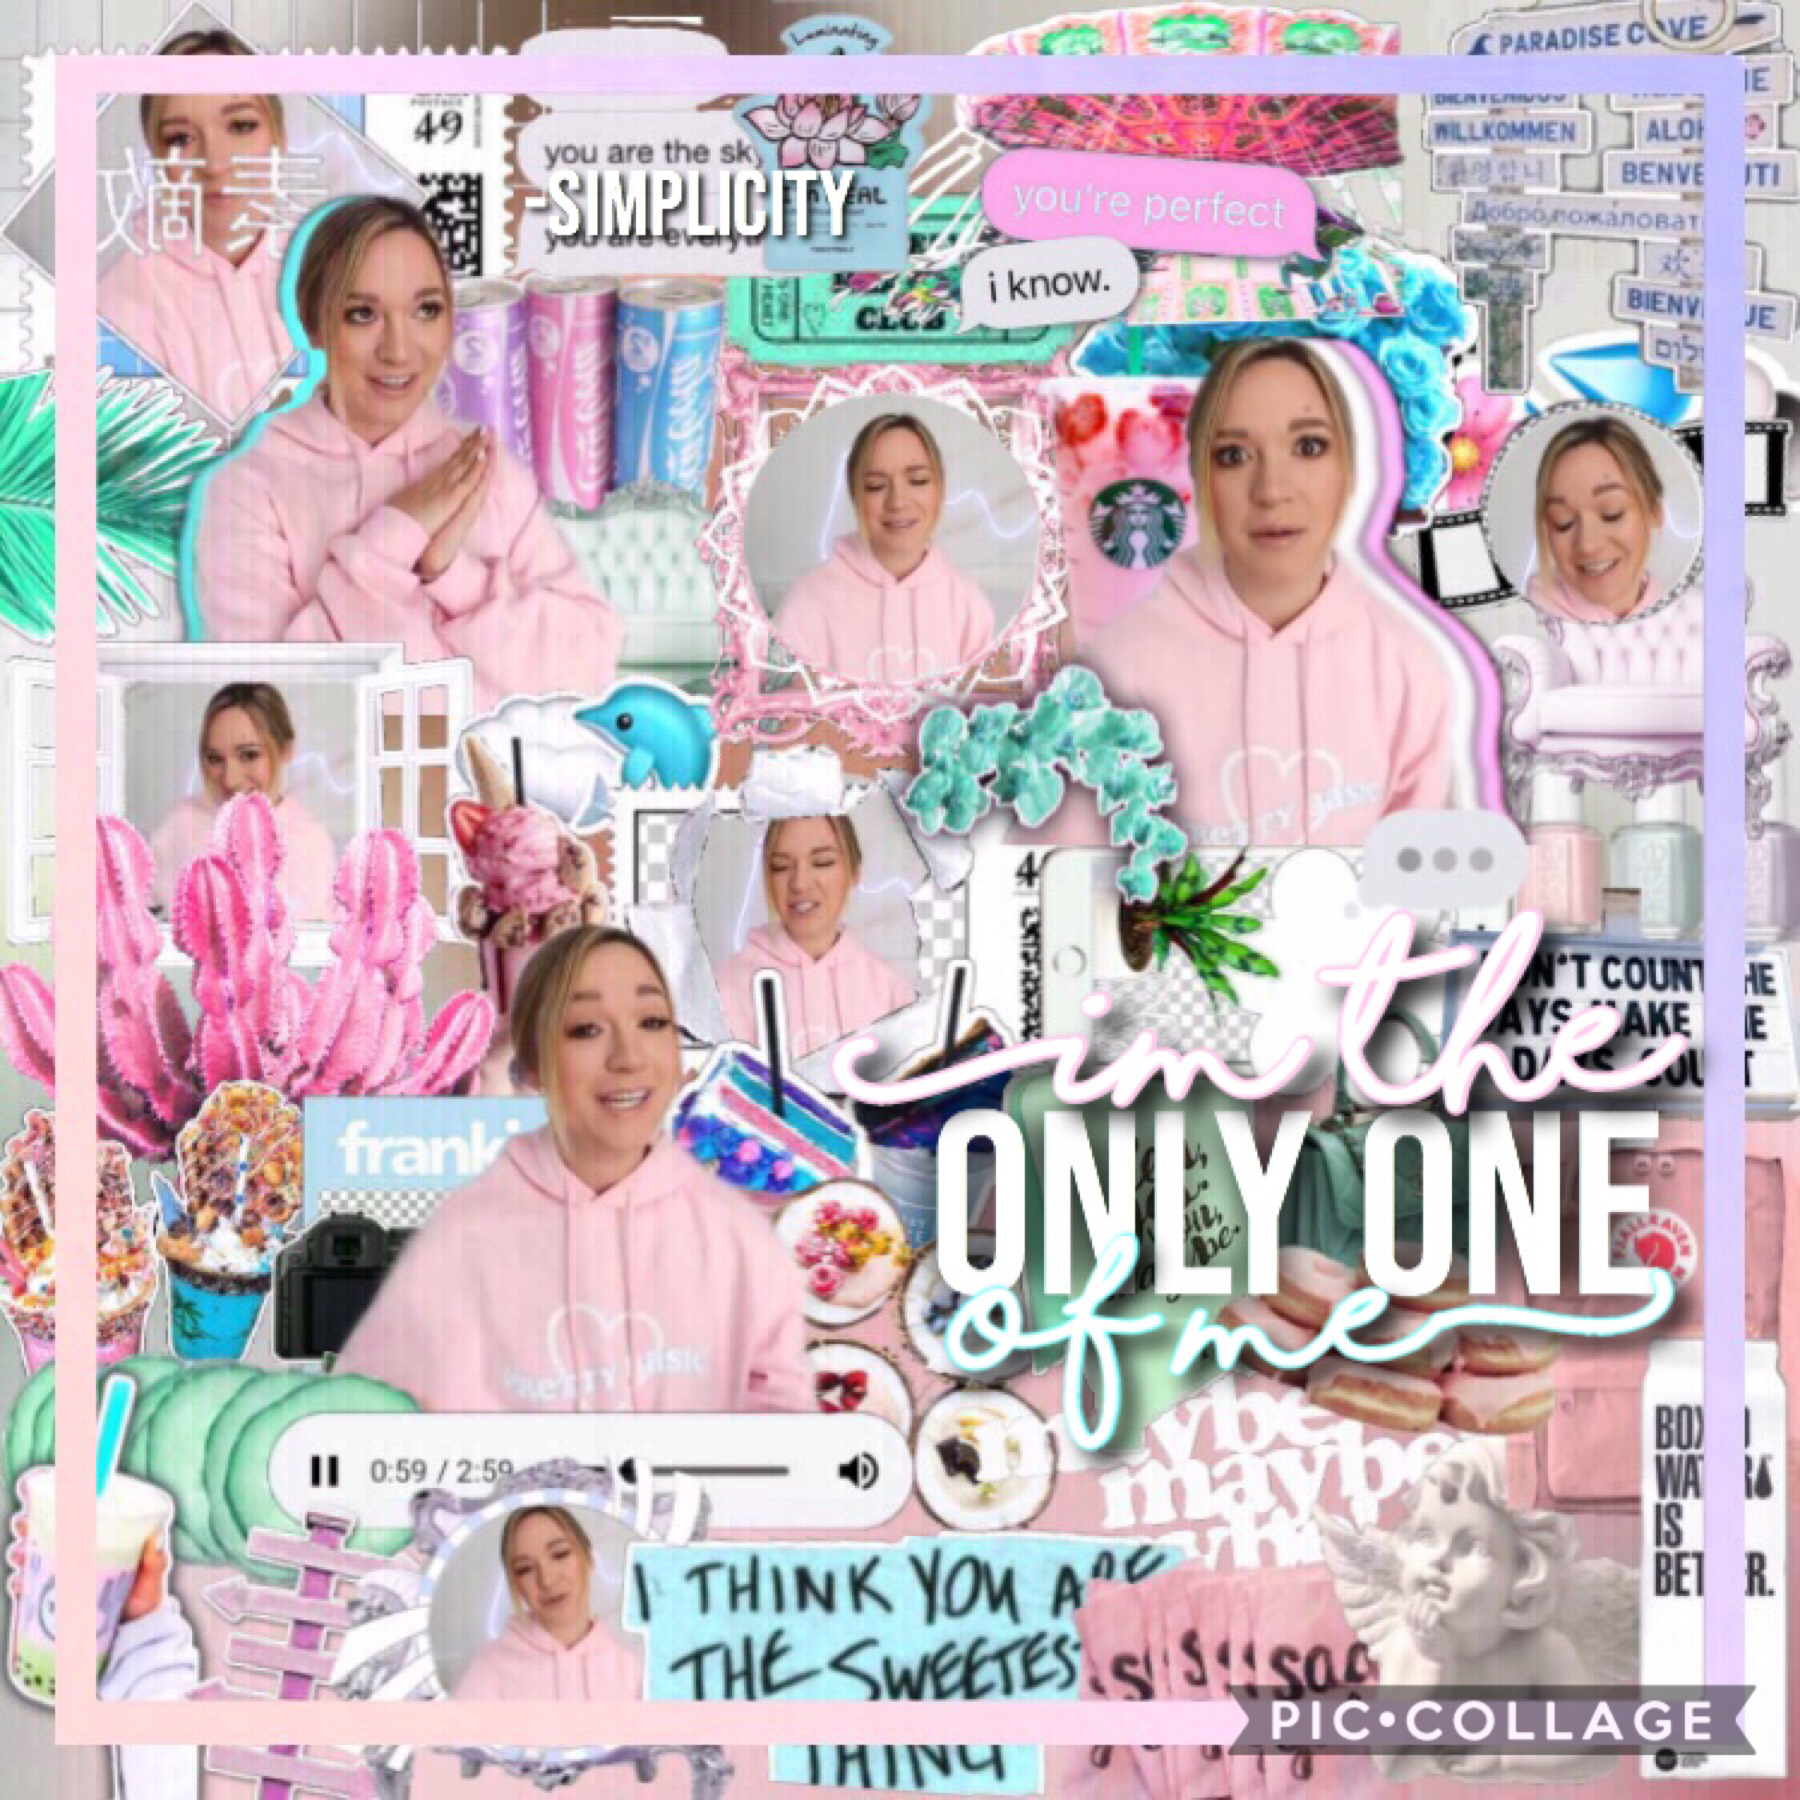 Hey guys!! Sorry I haven't posted in quite a bit! Here's a kind of pastel themed edit, it's a remake of one of my old edits and it looks really different. Hope you enjoy this edit!❤️